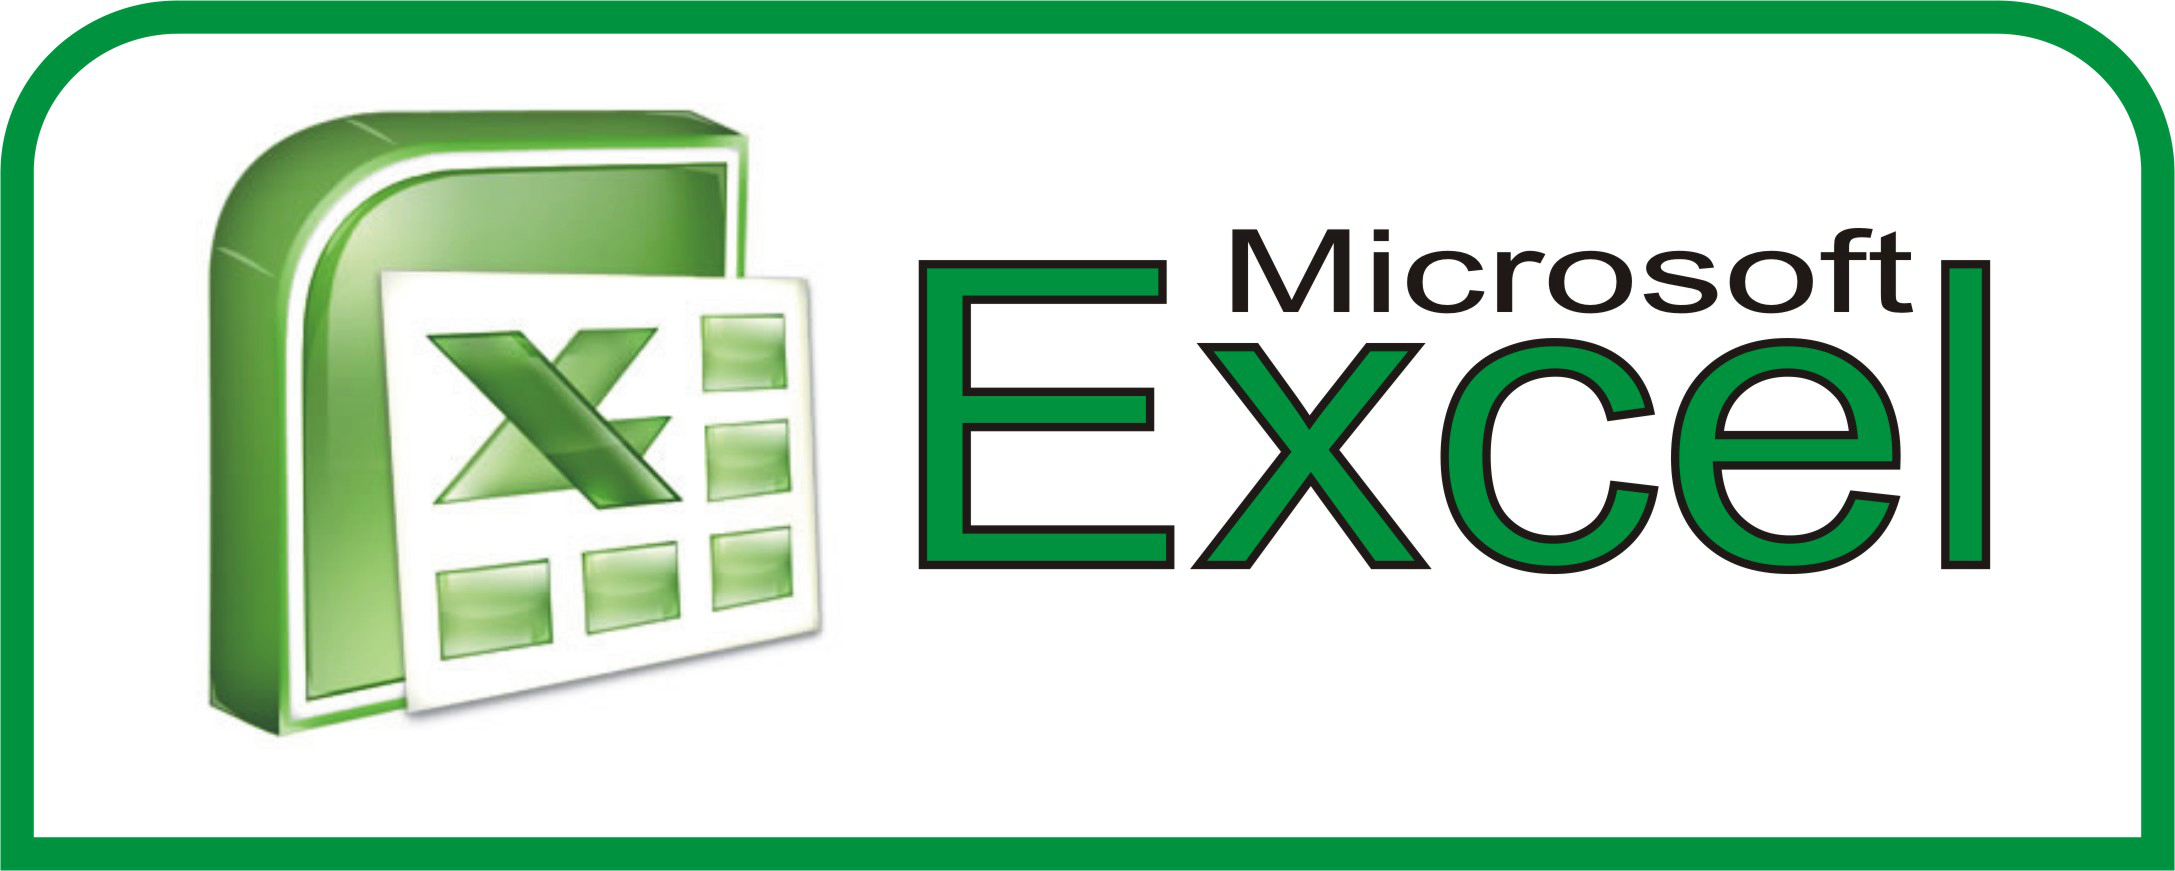 Ediblewildsus  Gorgeous  Excel Shortcuts You Probably Didnt Know About  Techdissected With Luxury Unhide Rows In Excel Besides Excel Roundup Furthermore Excel Document Not Saved With Delectable Excel Developer Tab Also How To Hide Columns In Excel In Addition Excel Trim And Excel  Tutorial As Well As Strikethrough In Excel Additionally Excel Gantt Chart Template From Techdissectedcom With Ediblewildsus  Luxury  Excel Shortcuts You Probably Didnt Know About  Techdissected With Delectable Unhide Rows In Excel Besides Excel Roundup Furthermore Excel Document Not Saved And Gorgeous Excel Developer Tab Also How To Hide Columns In Excel In Addition Excel Trim From Techdissectedcom